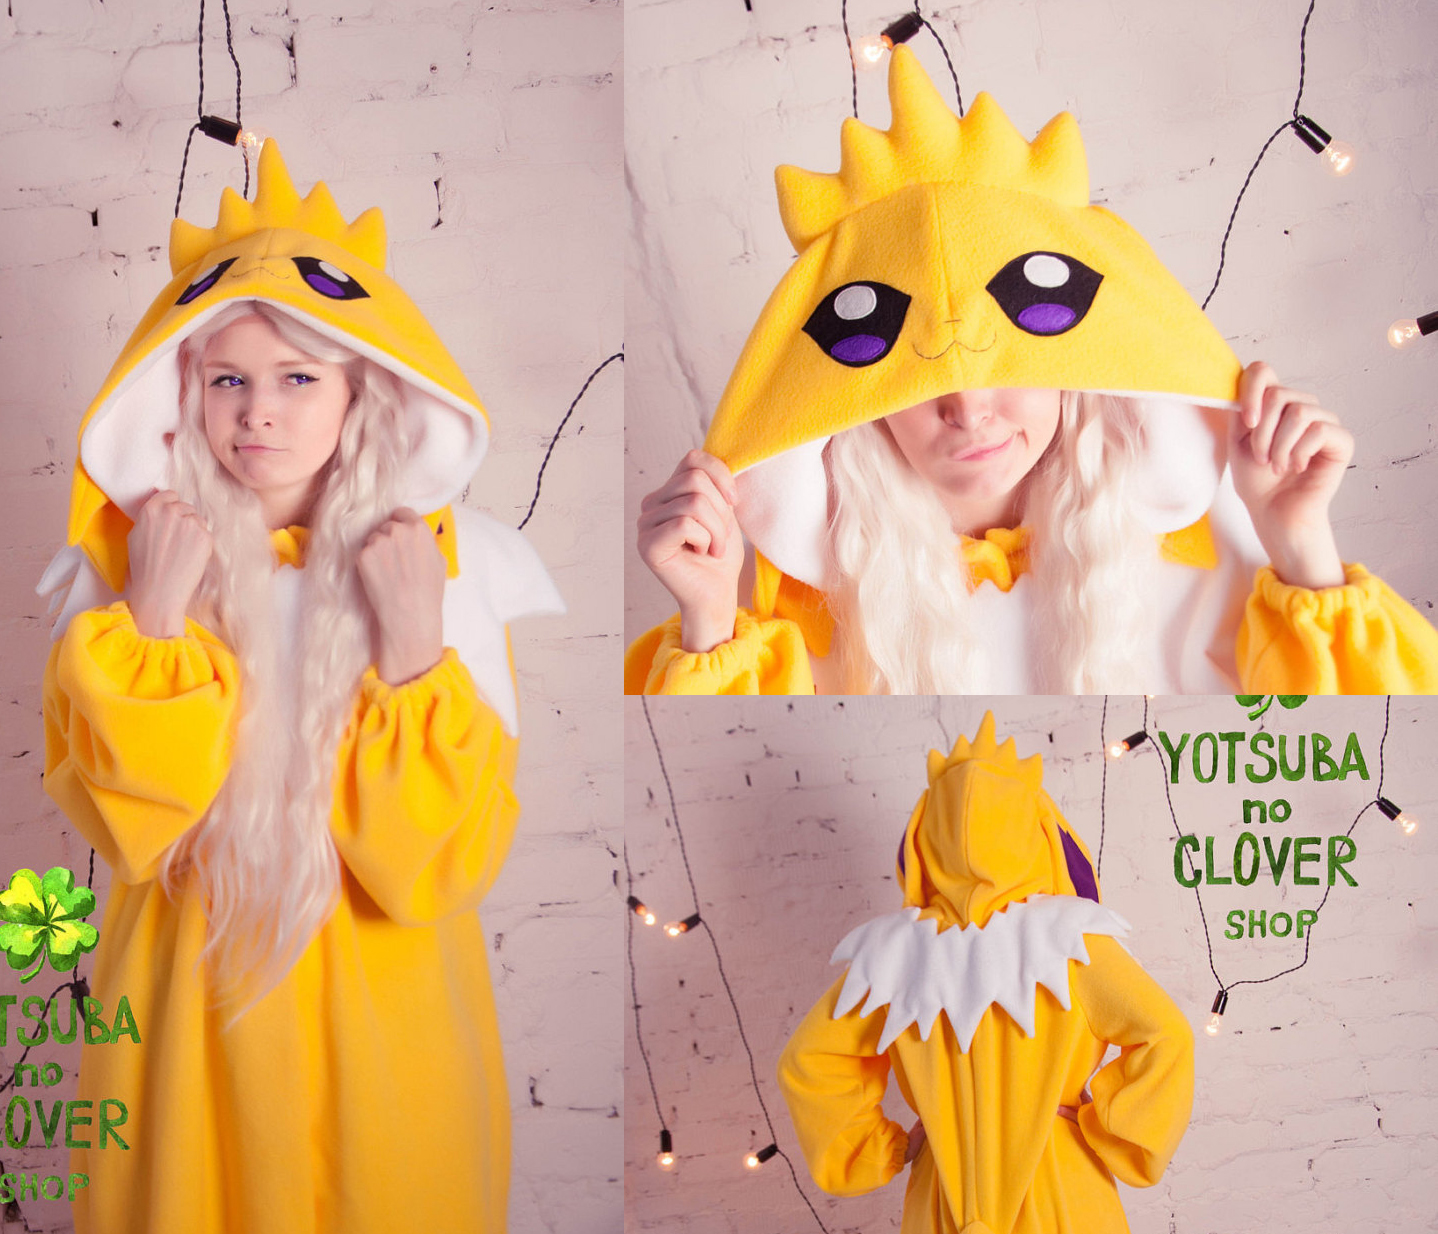 best-pokemon-onesie-adult-jolteon-inspired-kigurumi-ask-a-question-2017